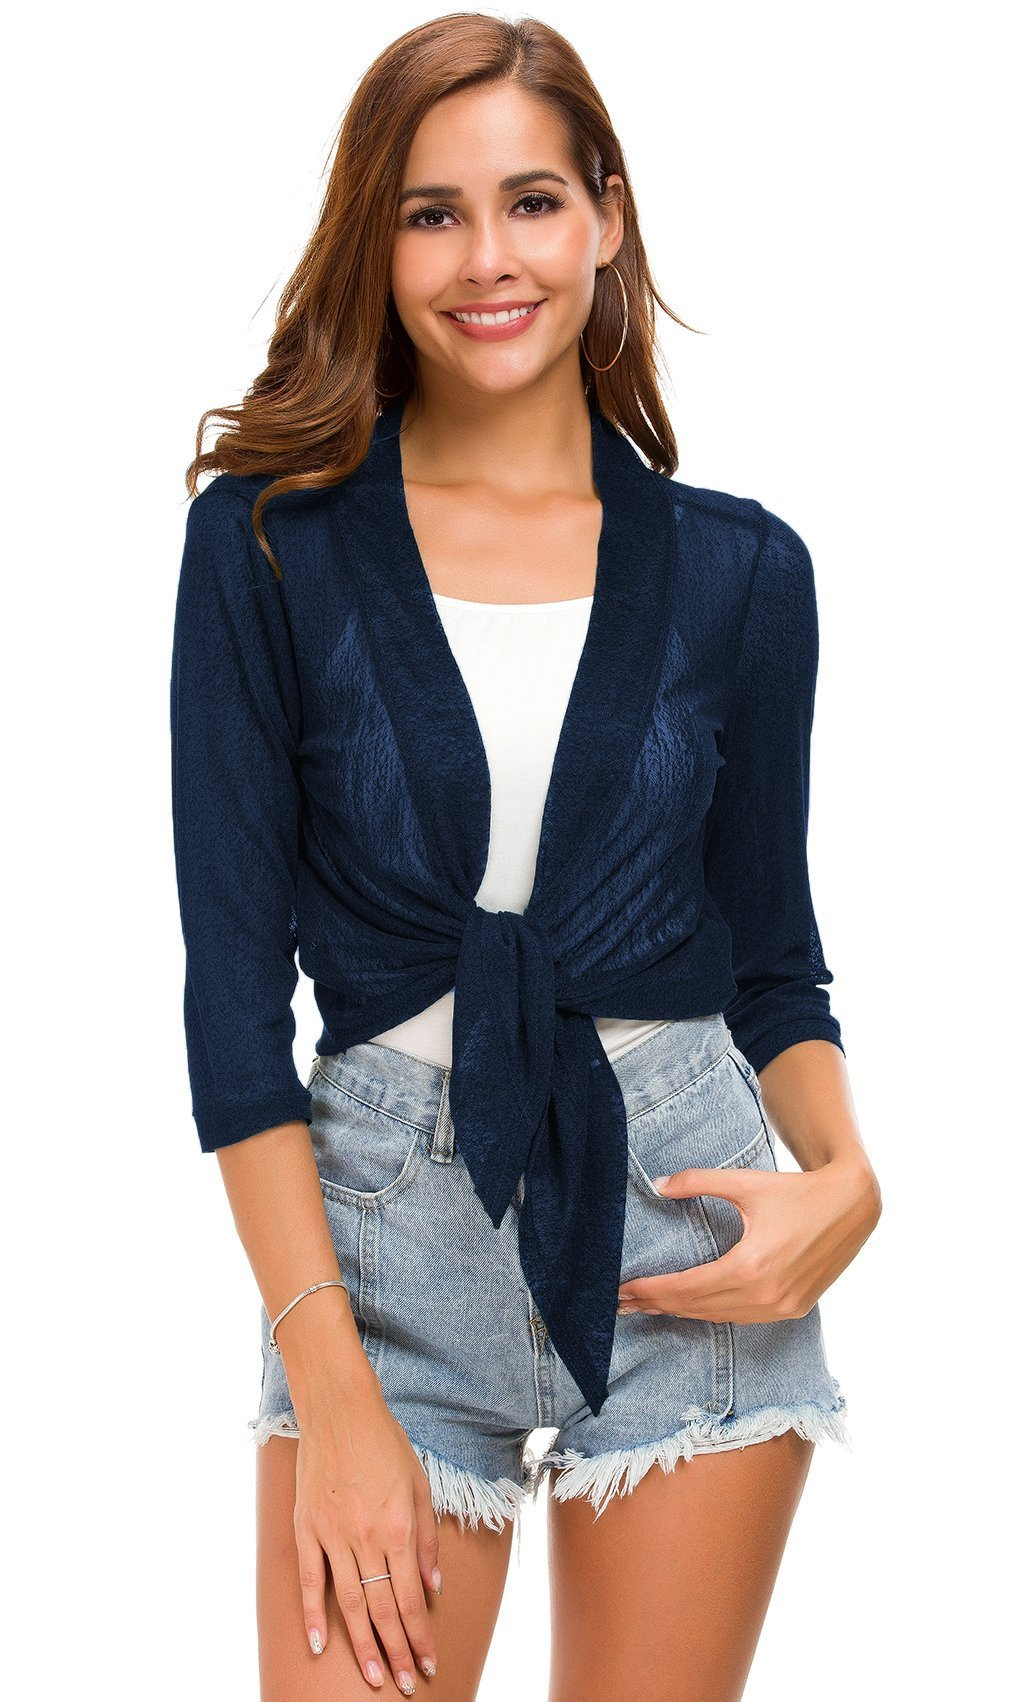 Tandisk Womens Tie Front 3/4 Sleeve Sheer Shrug Cropped Bolero Cardigan (M, Tie Front Navyblue)